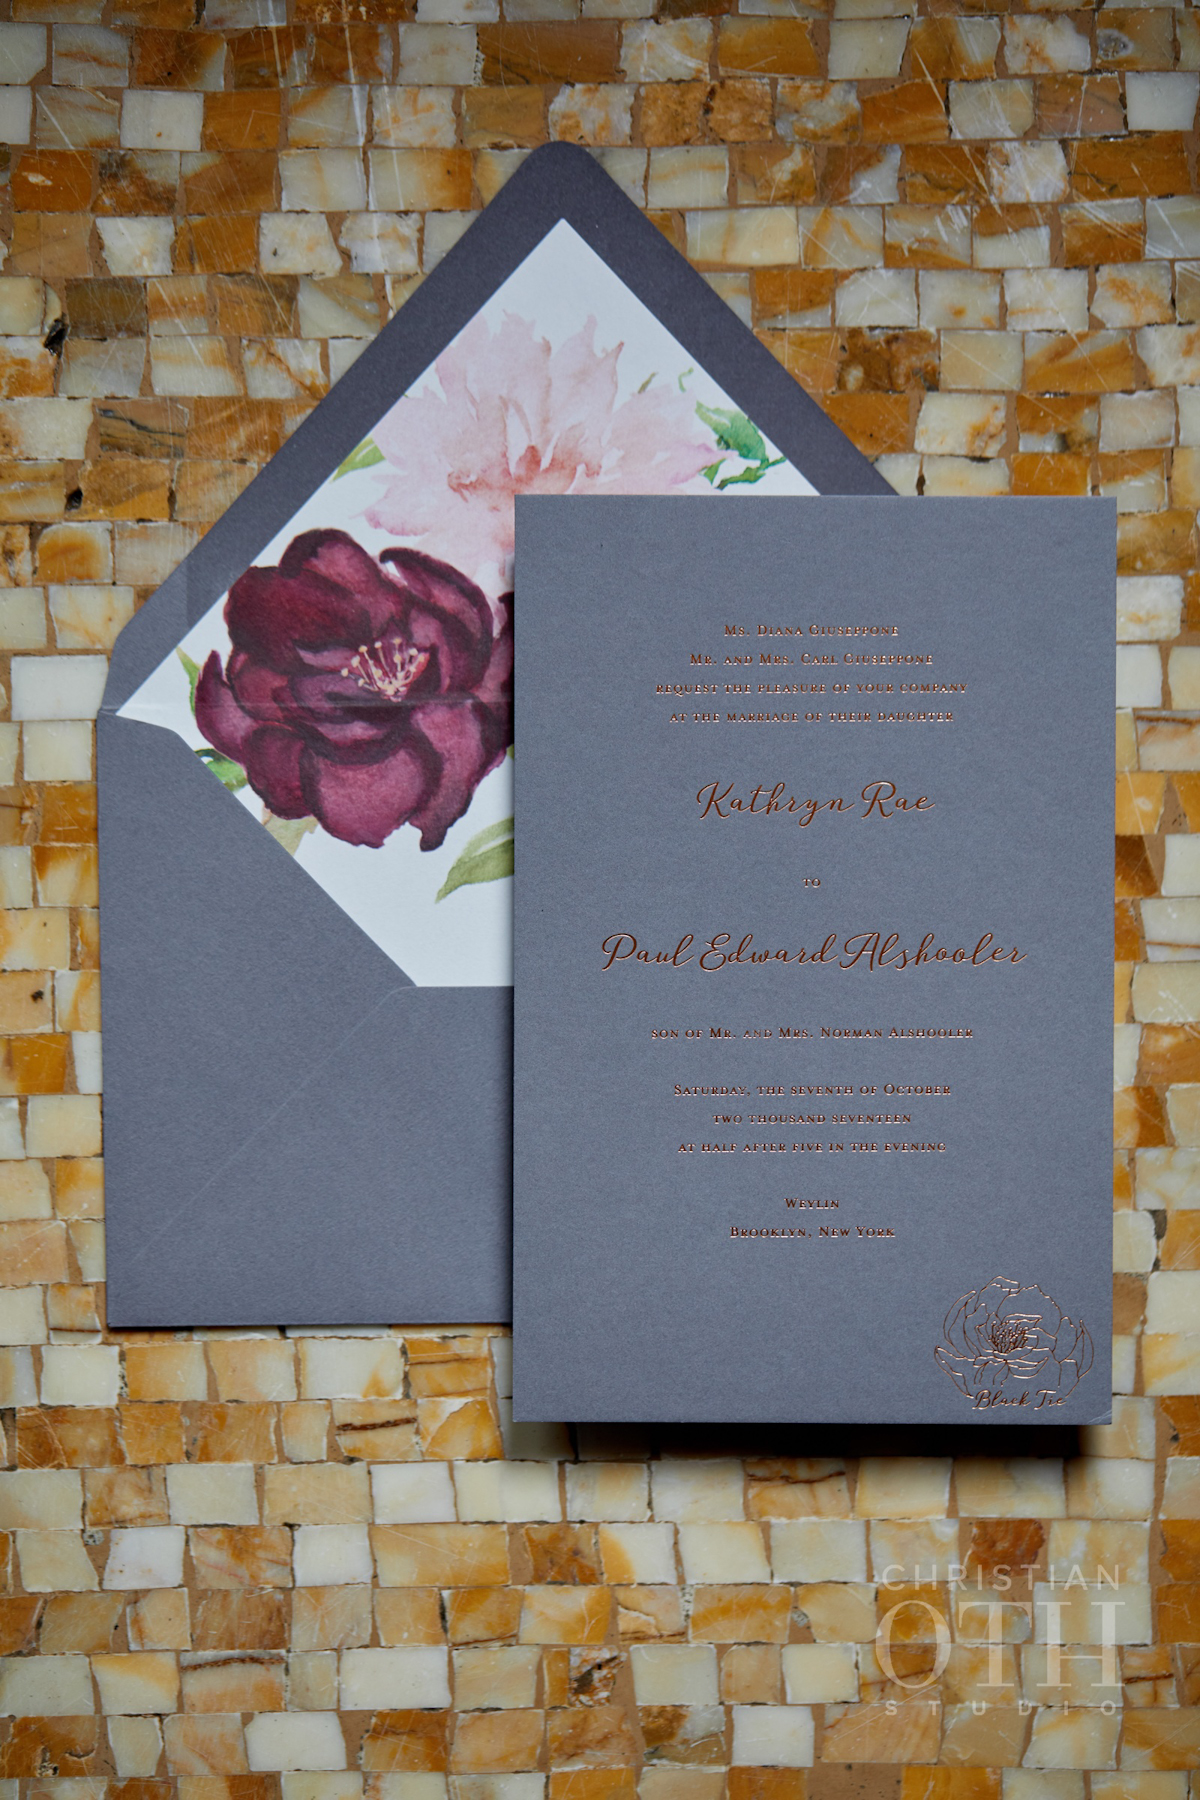 Weylin wedding, Ang Weddings and Events, Christian Oth Studios, Poppies and Posies, Katie Fischer Design wedding invitation